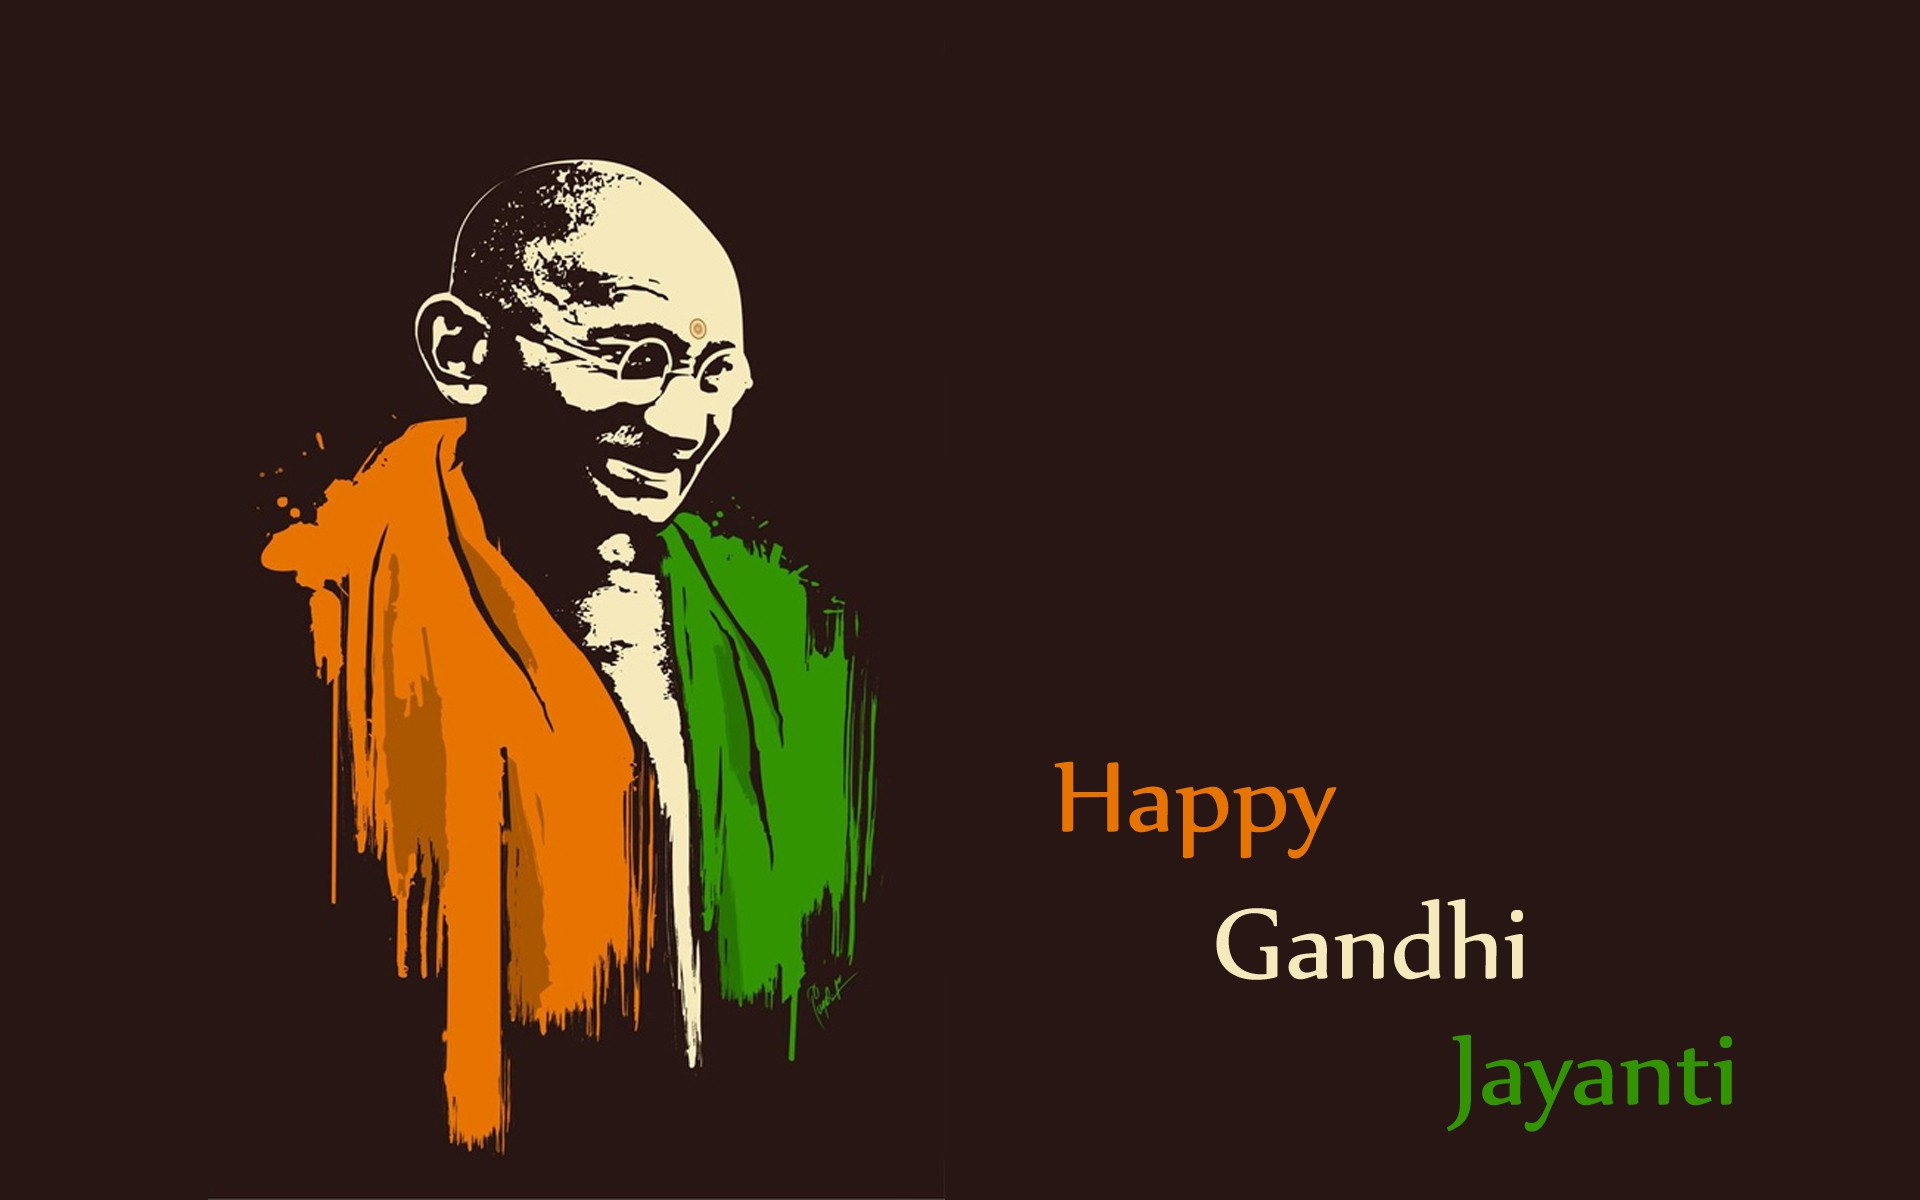 mahatma gandhi essays national integration essay mahatma gandhi  mahatma gandhi jayanti essay in english history quotes mahatma gandhi jayanti essay in english history quotes